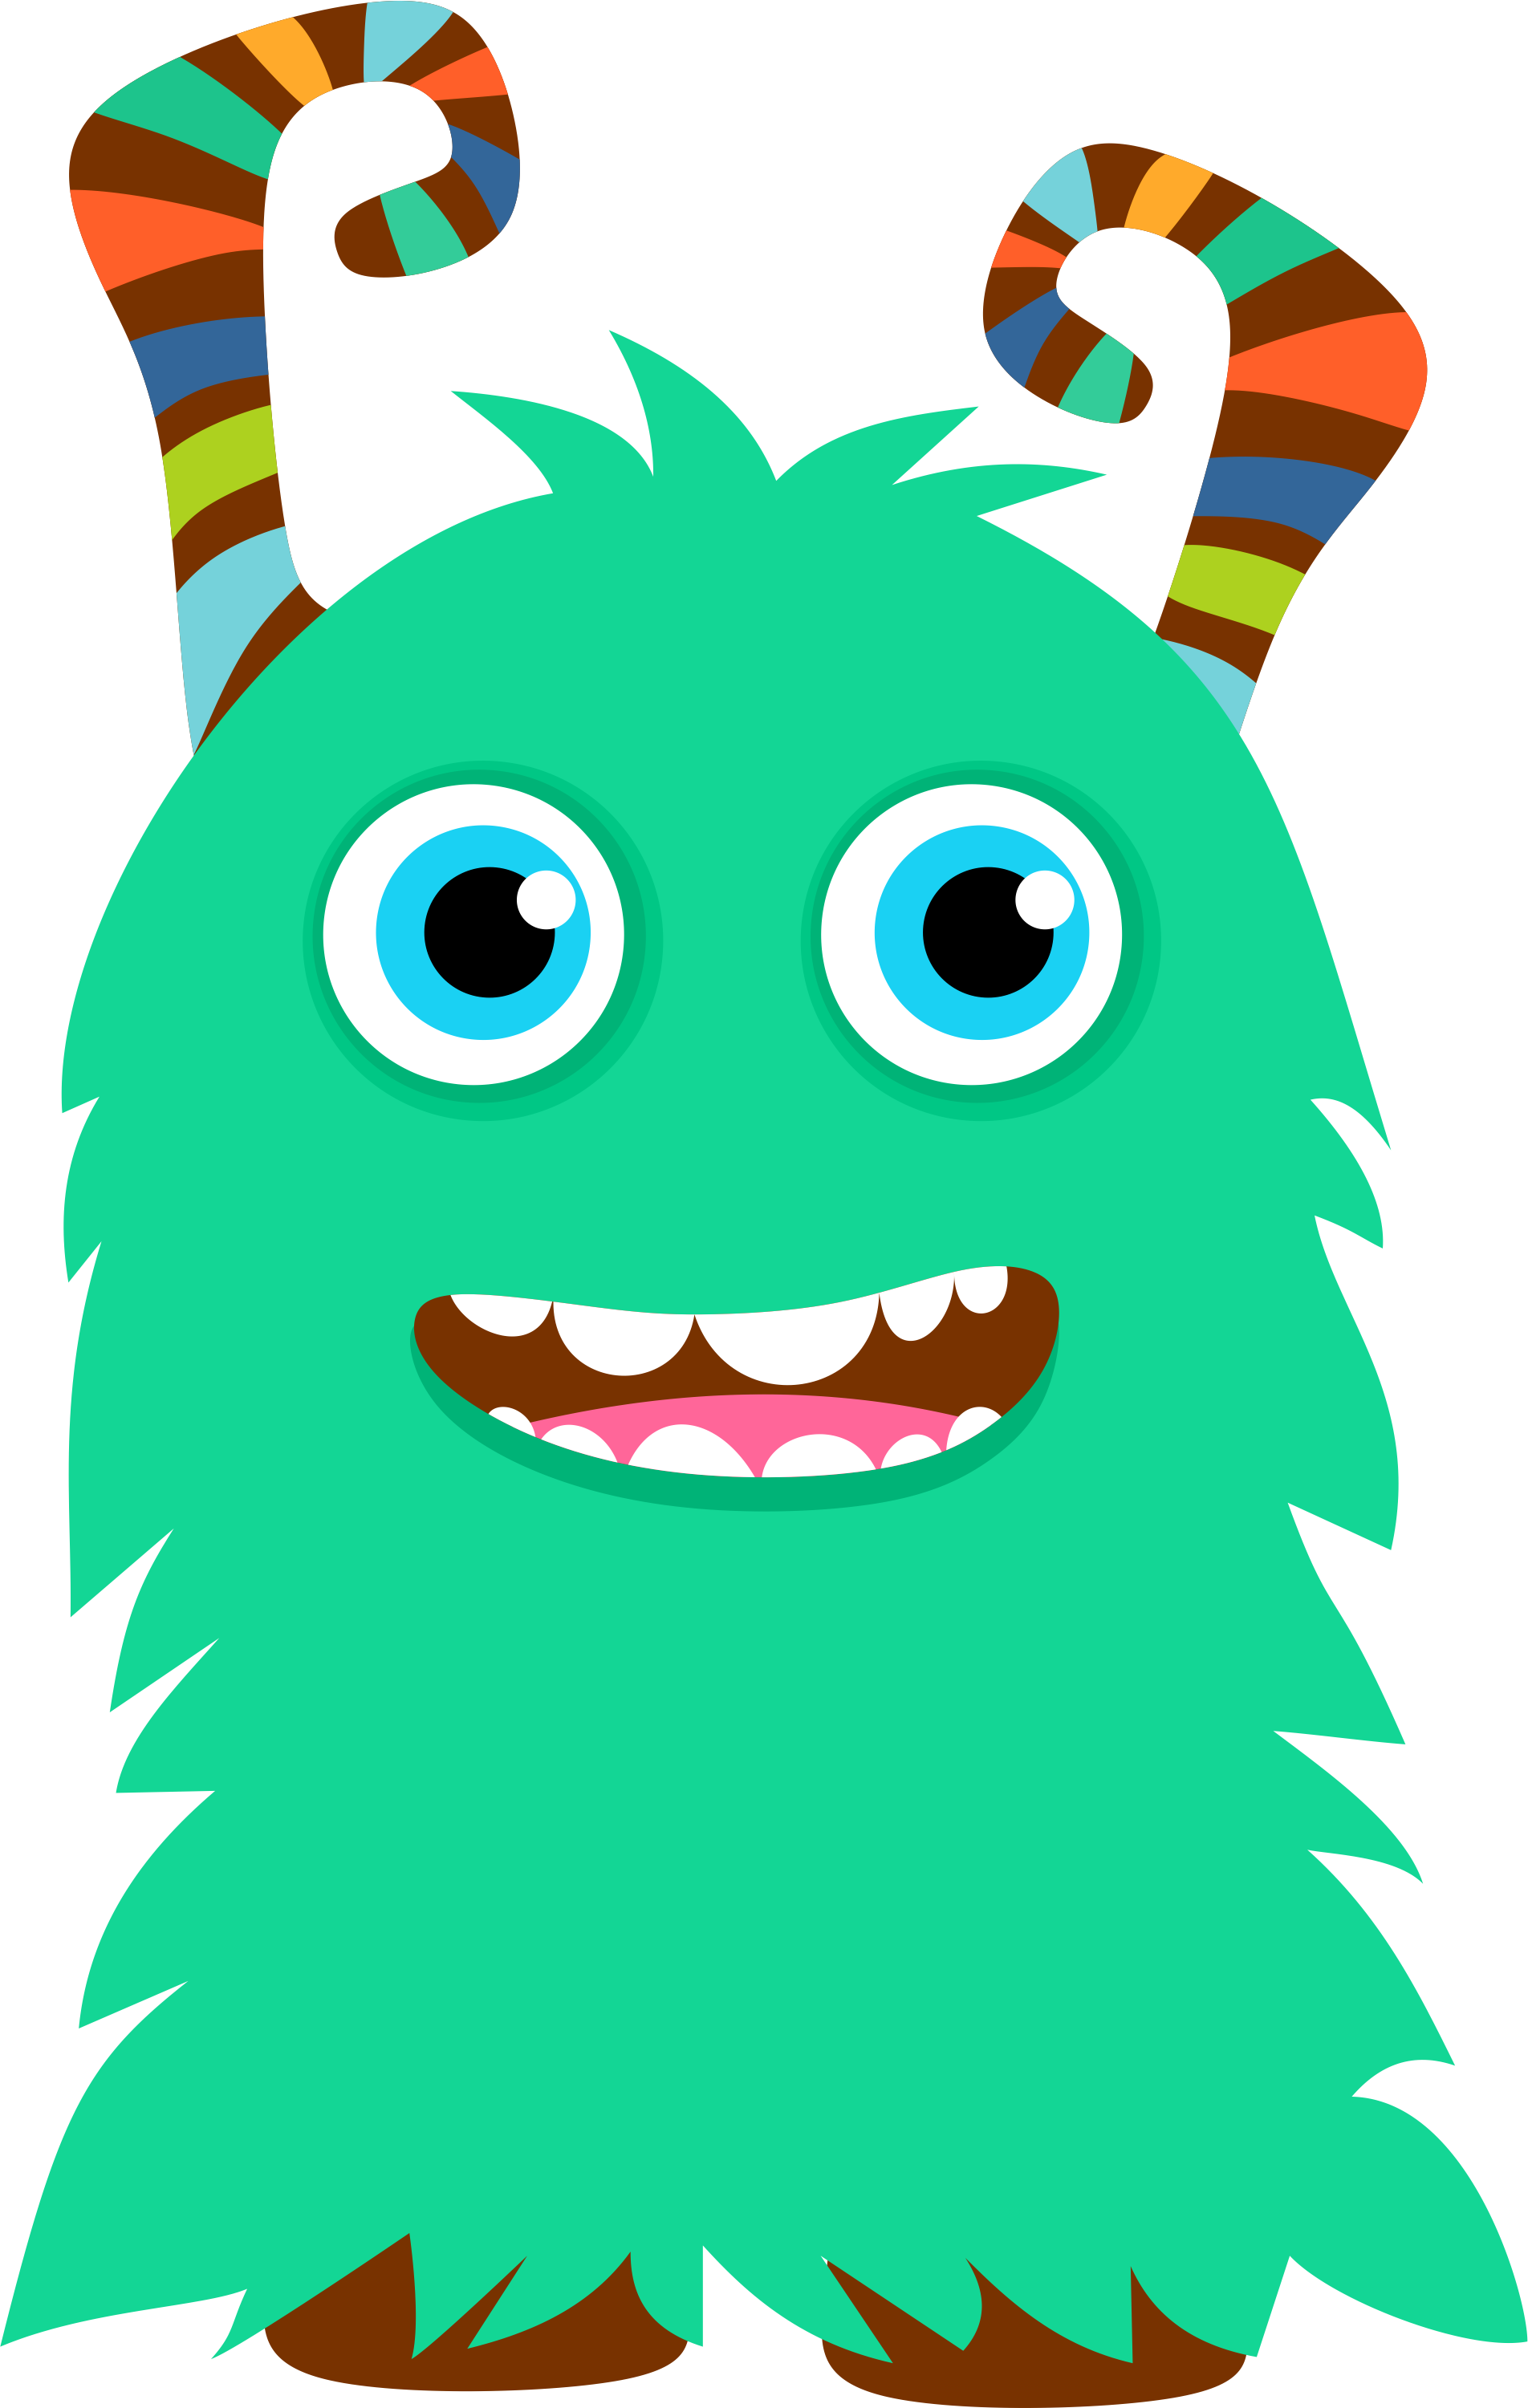 Pencil clipart monster Bed Monsters drawings Bed clipart